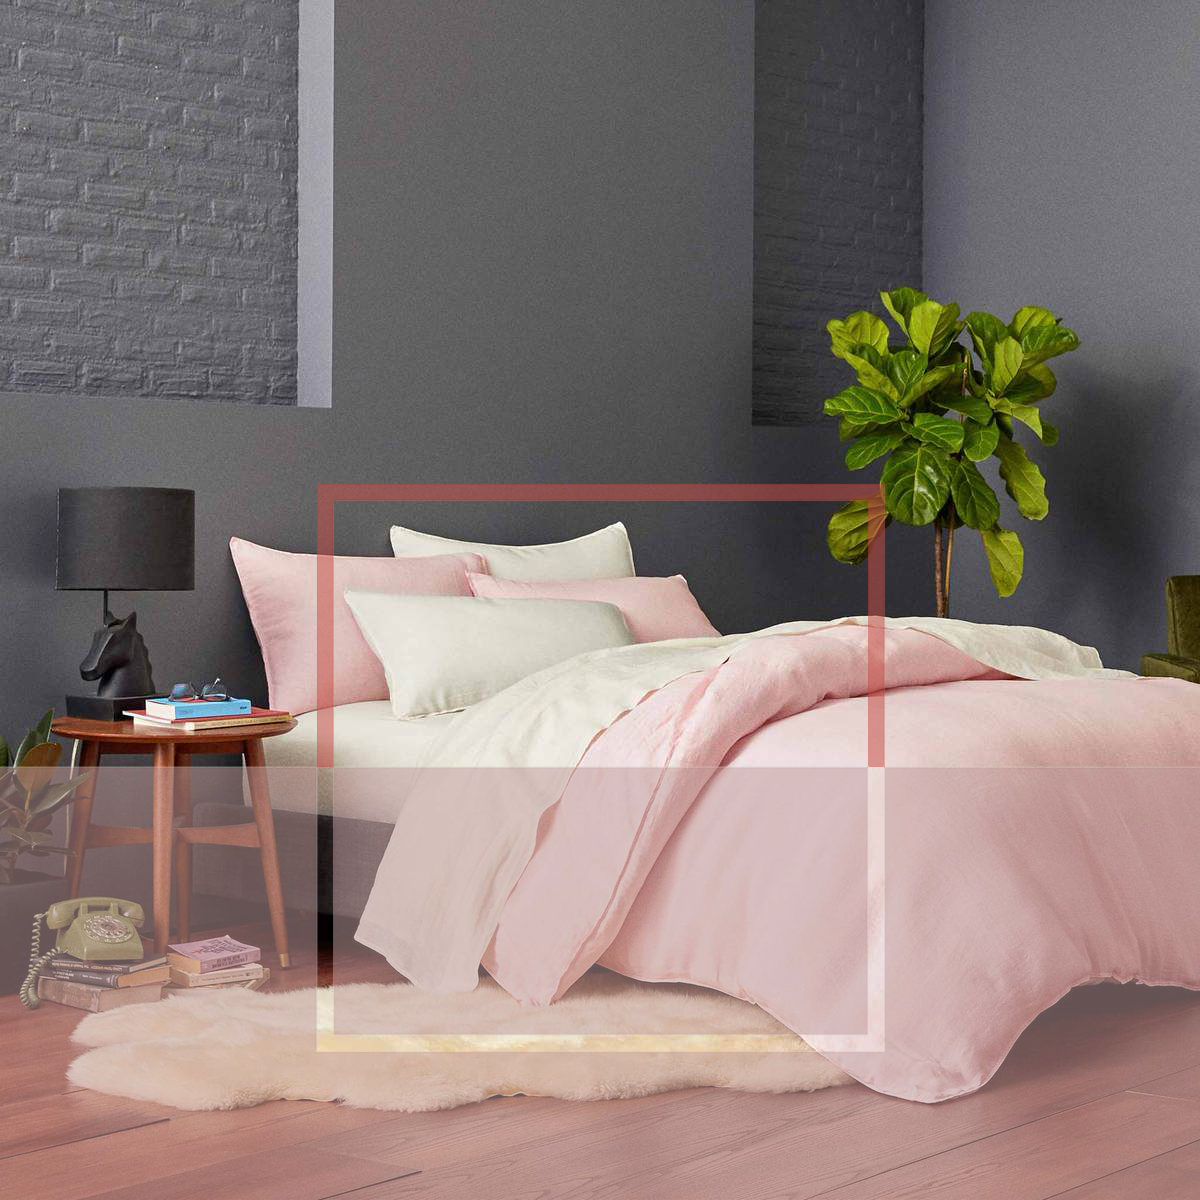 Feng Shui Bedroom Rules for a Better Sleep  Real Simple